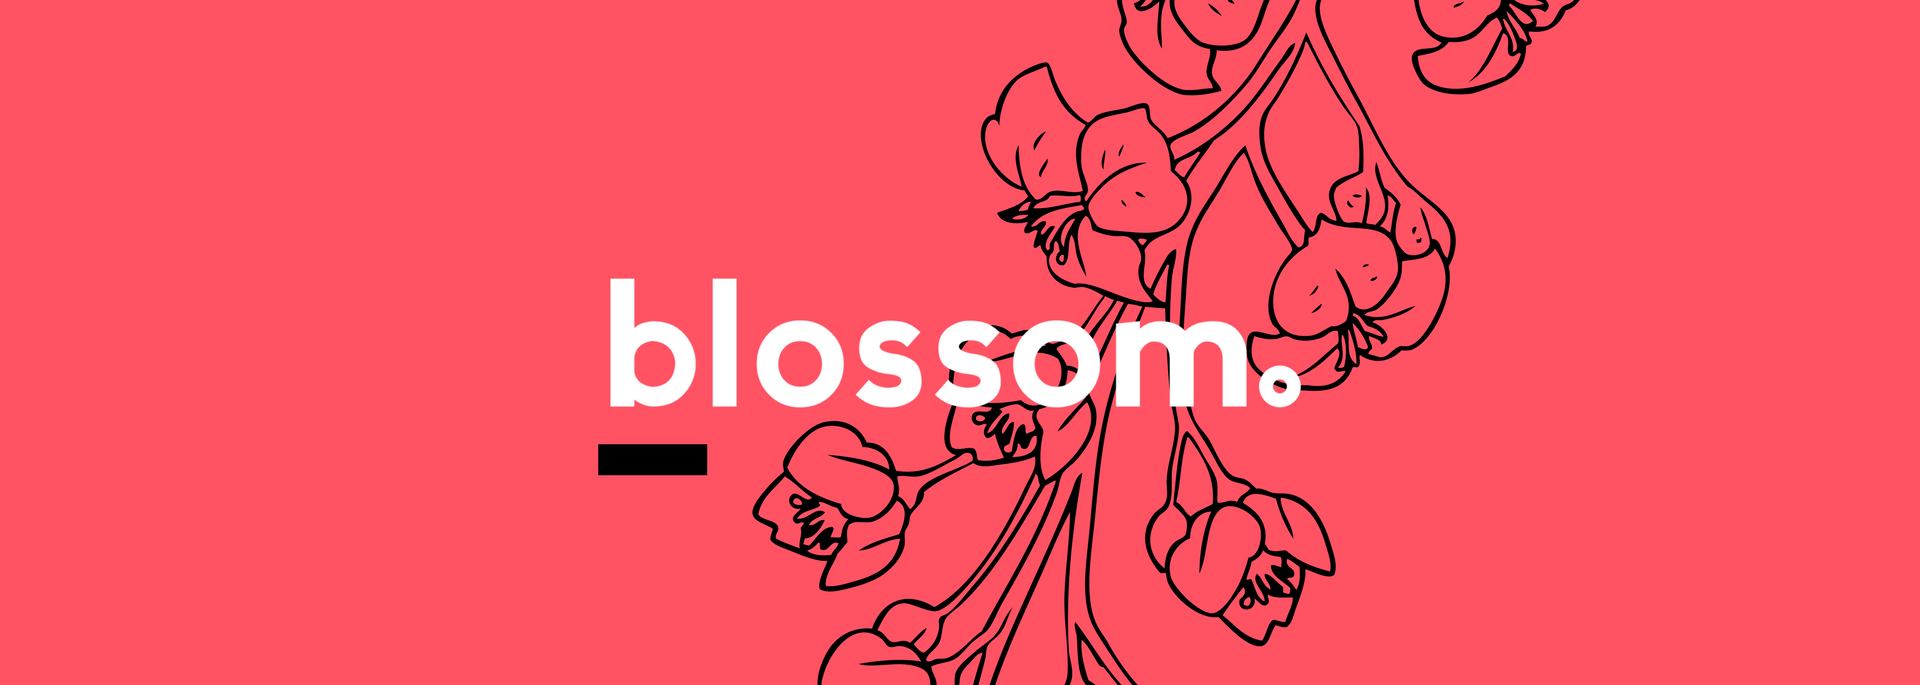 Blossom channel